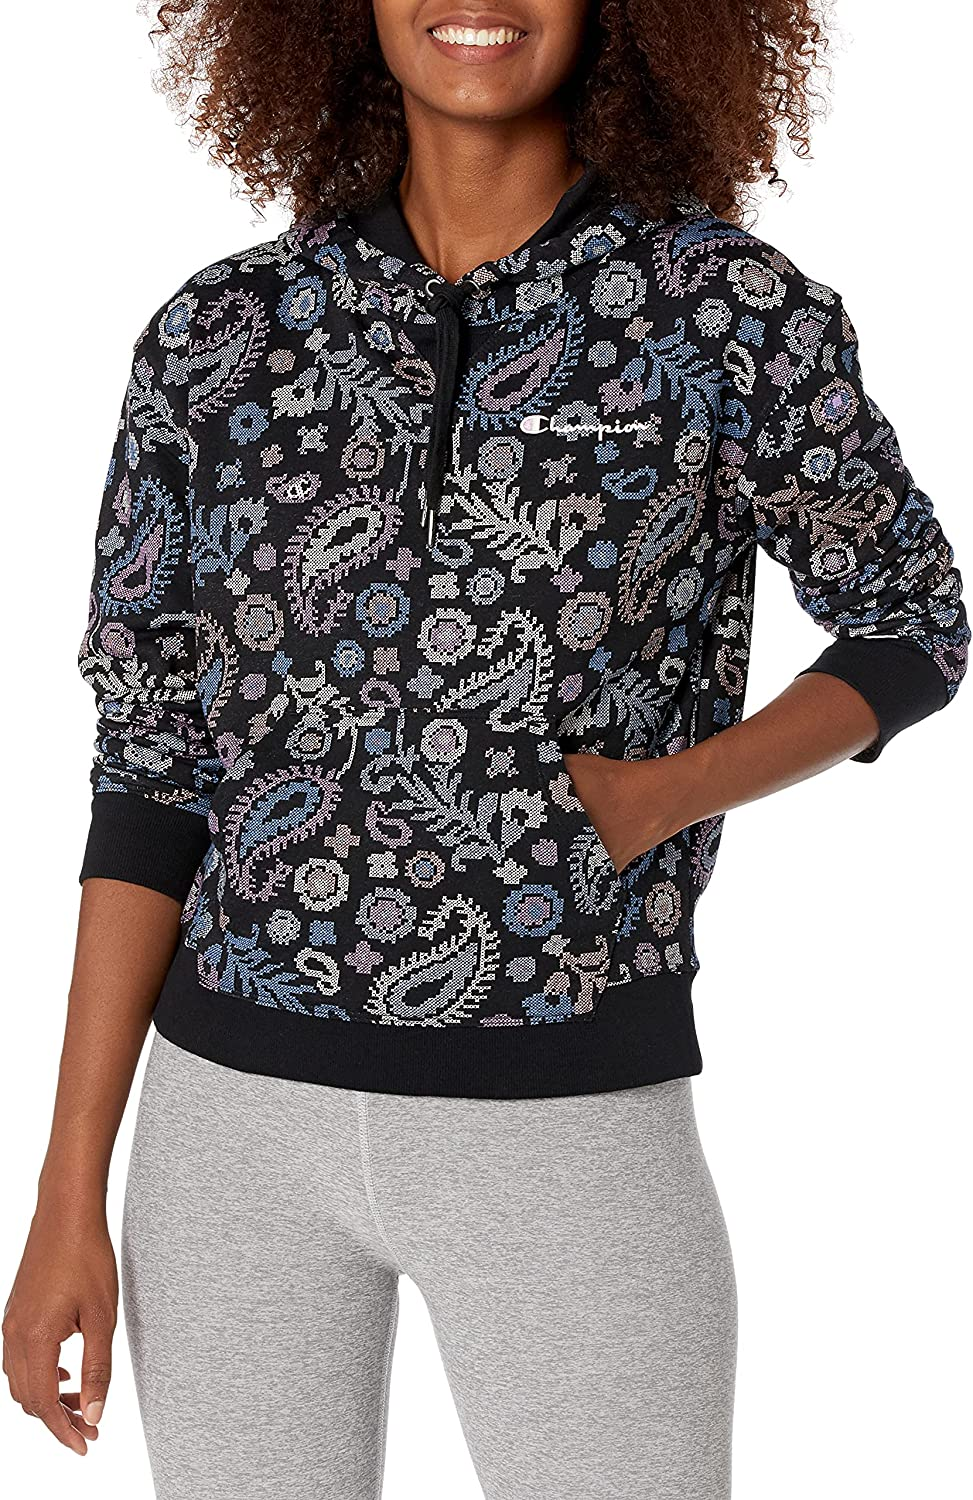 Champion Women's Max 87% OFF Campus Hoodie French Terry Max 75% OFF